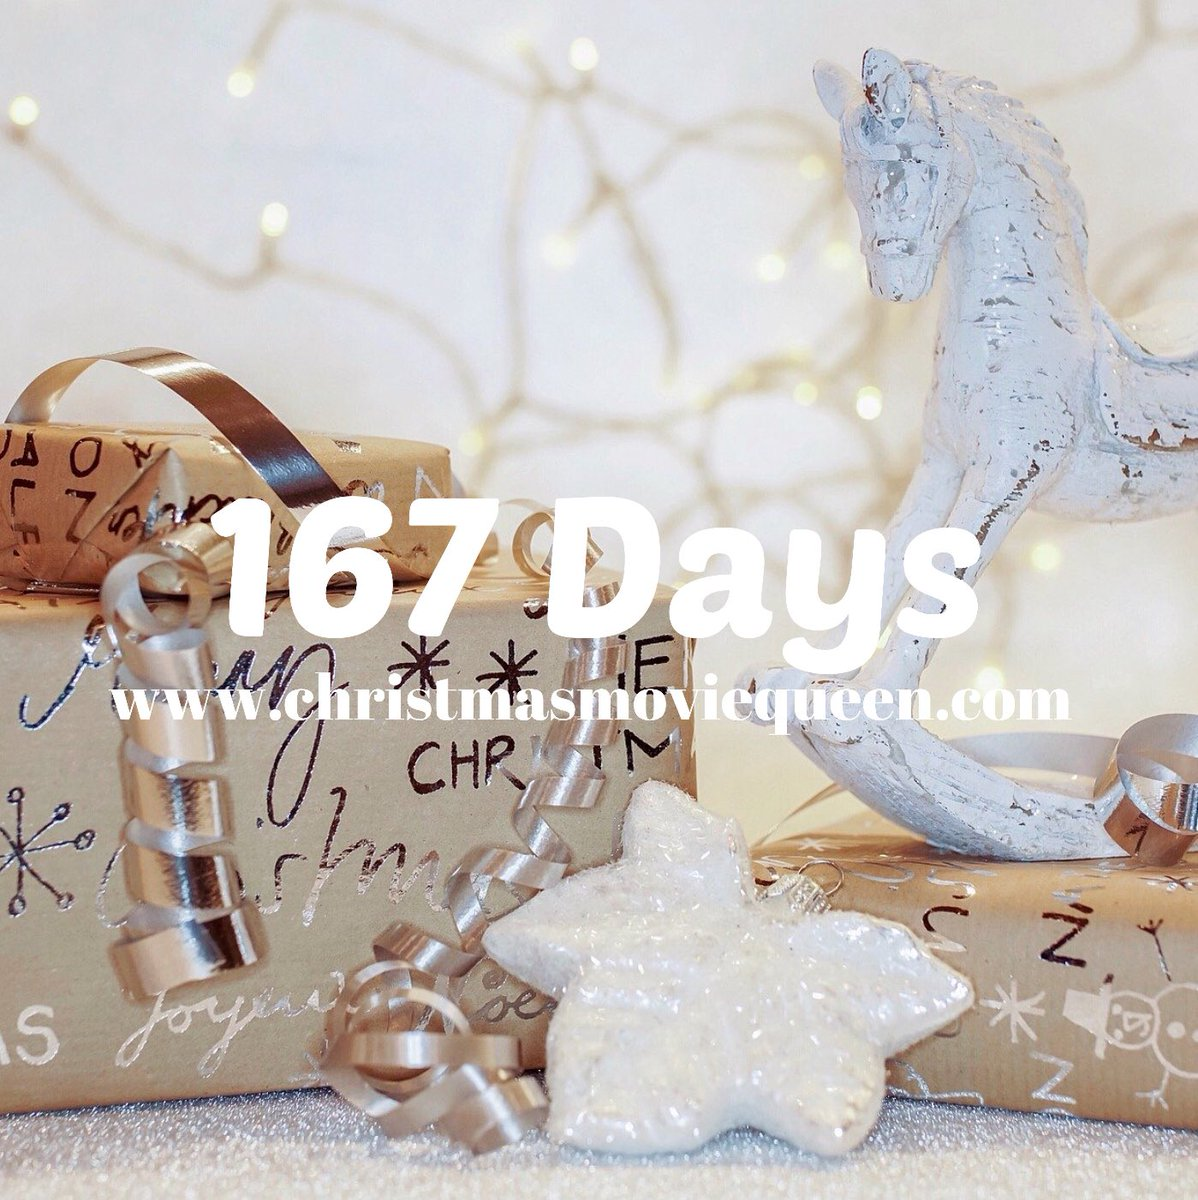 Good morning!  Only 167 to go! #countdown #christmas #winter #christmascountdown #christmasspirit #christmas2020 #holidays #christmasmagic #santa #santaclaus #believe #ChristmasMovies #MovieReviews pic.twitter.com/a4kzaMhWnL